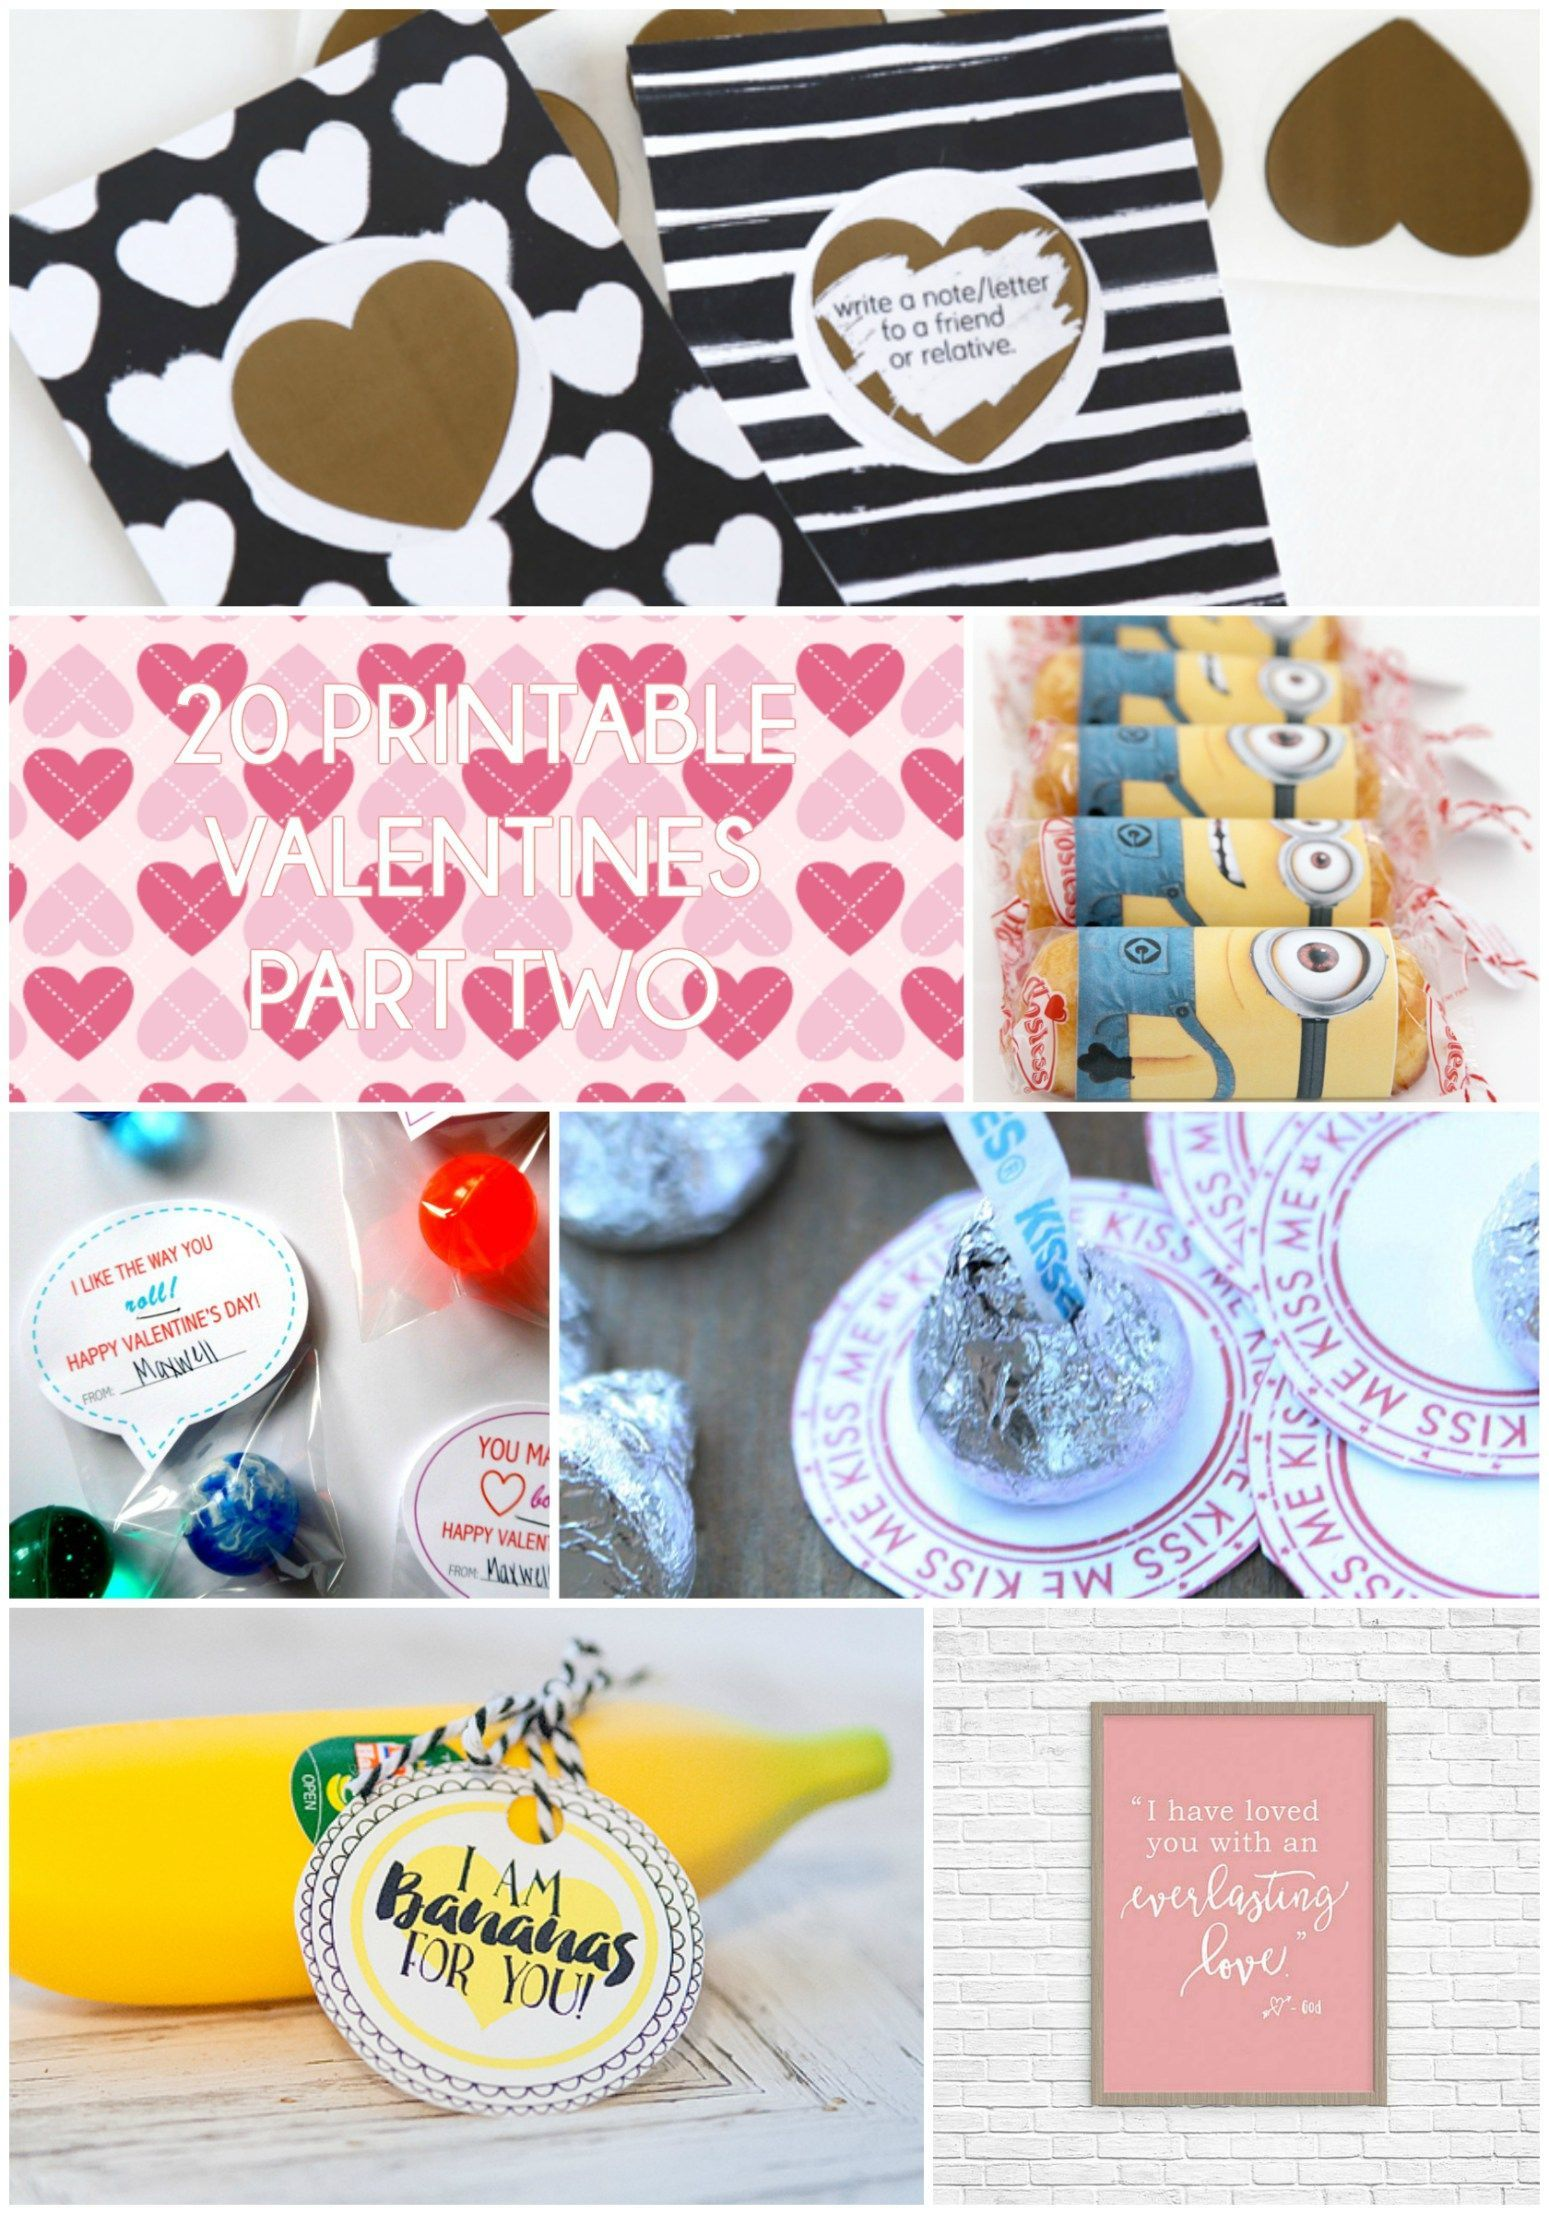 , #friends valentines day gifts #ideas for valentines day date #valentines day #happy valentines day to my love #what day is valentines day, My Pop Star Kda Blog, My Pop Star Kda Blog